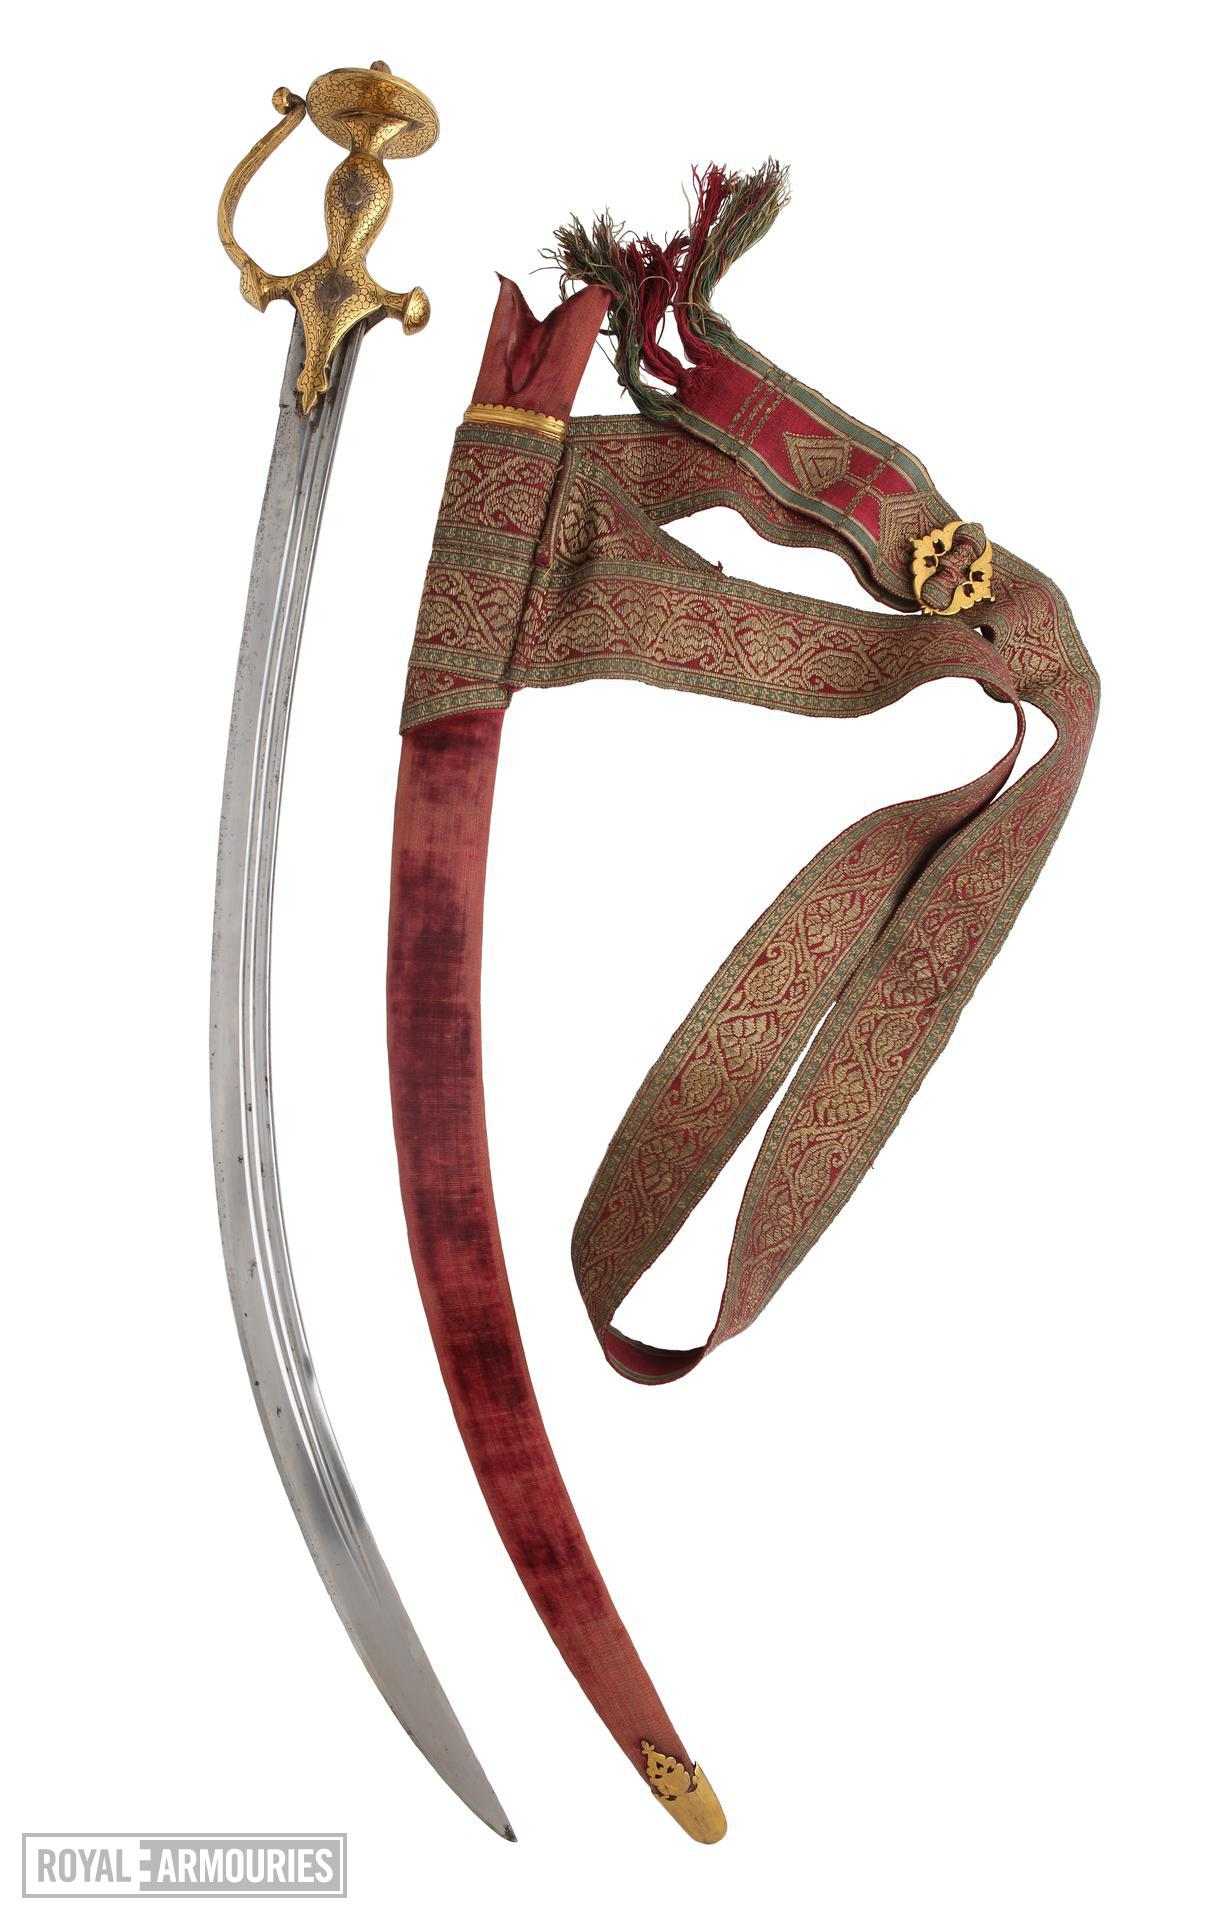 Sword (talwar), scabbard and belt